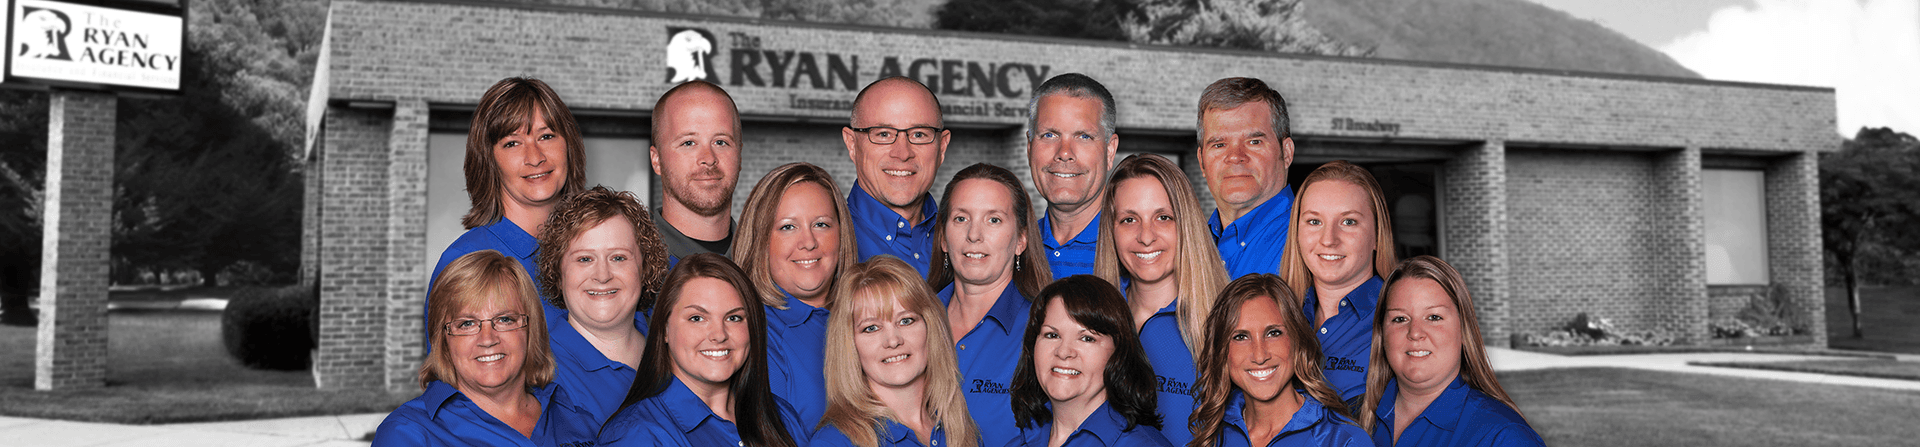 The Ryan Agency Staff